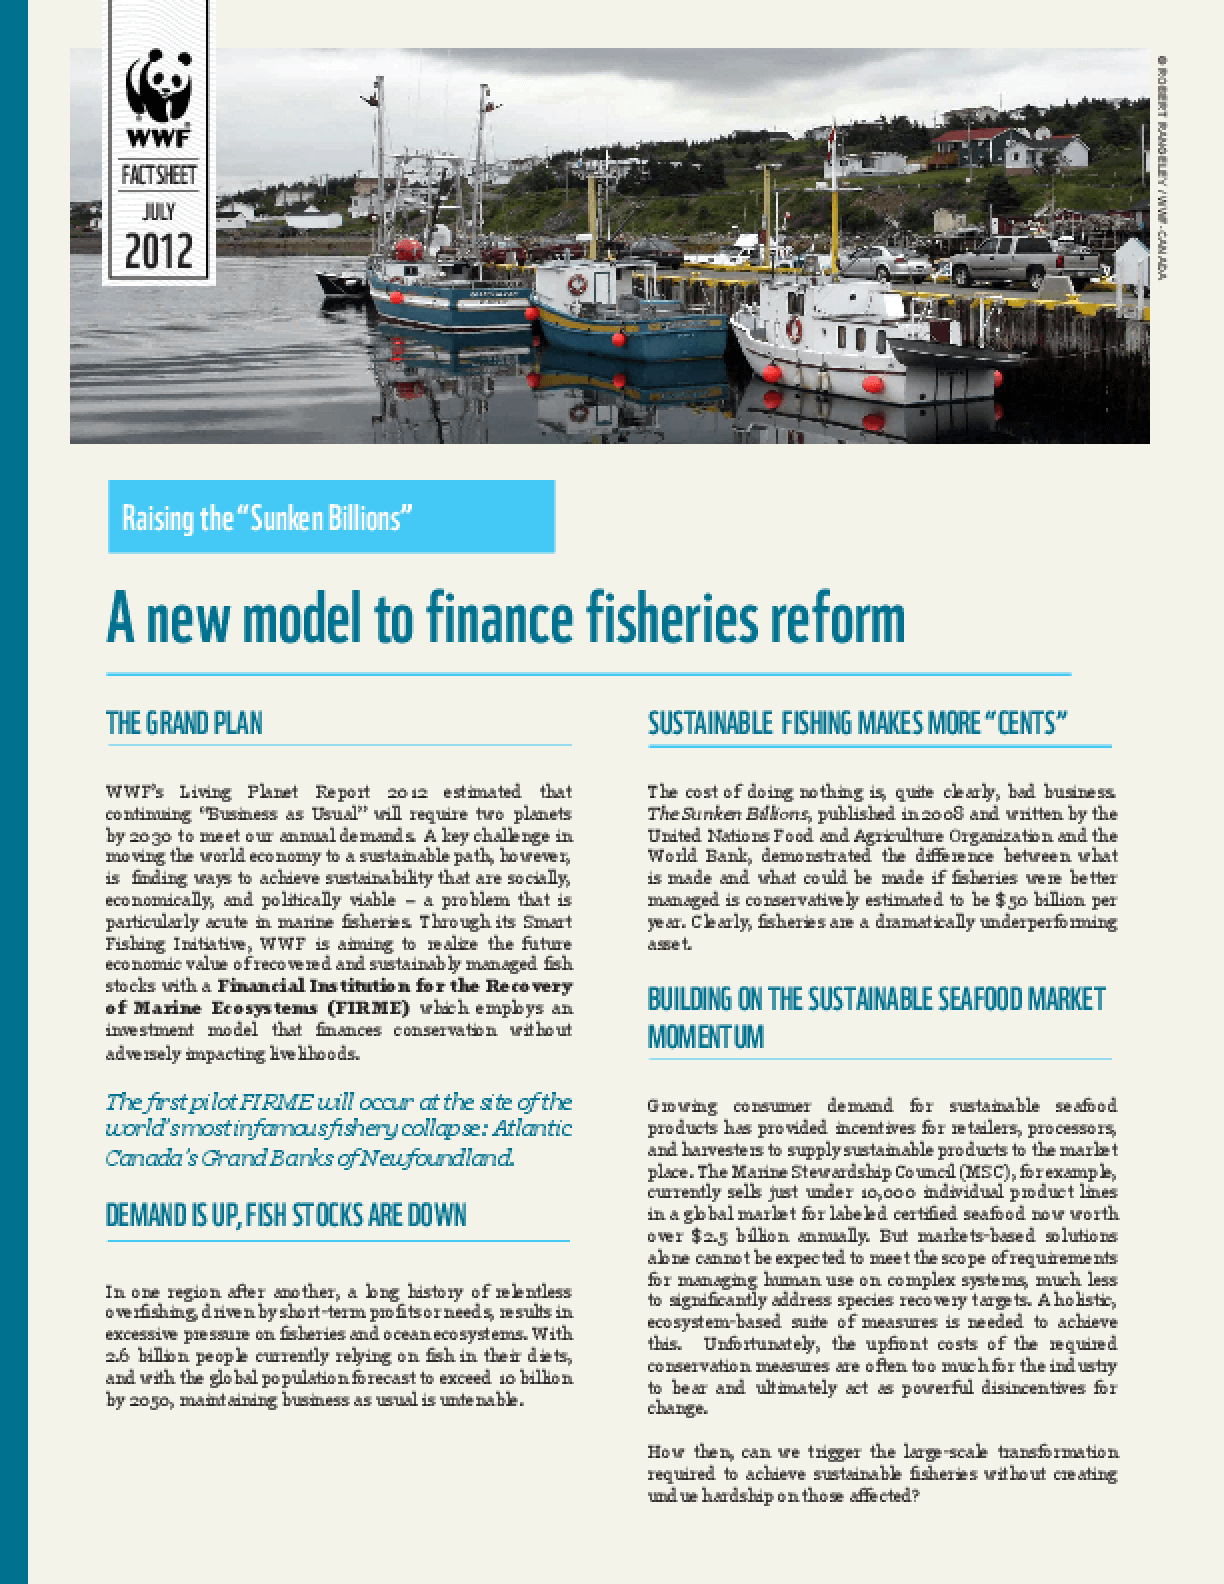 Raising the Sunken Billions: A New Model to Finance Fisheries Reform